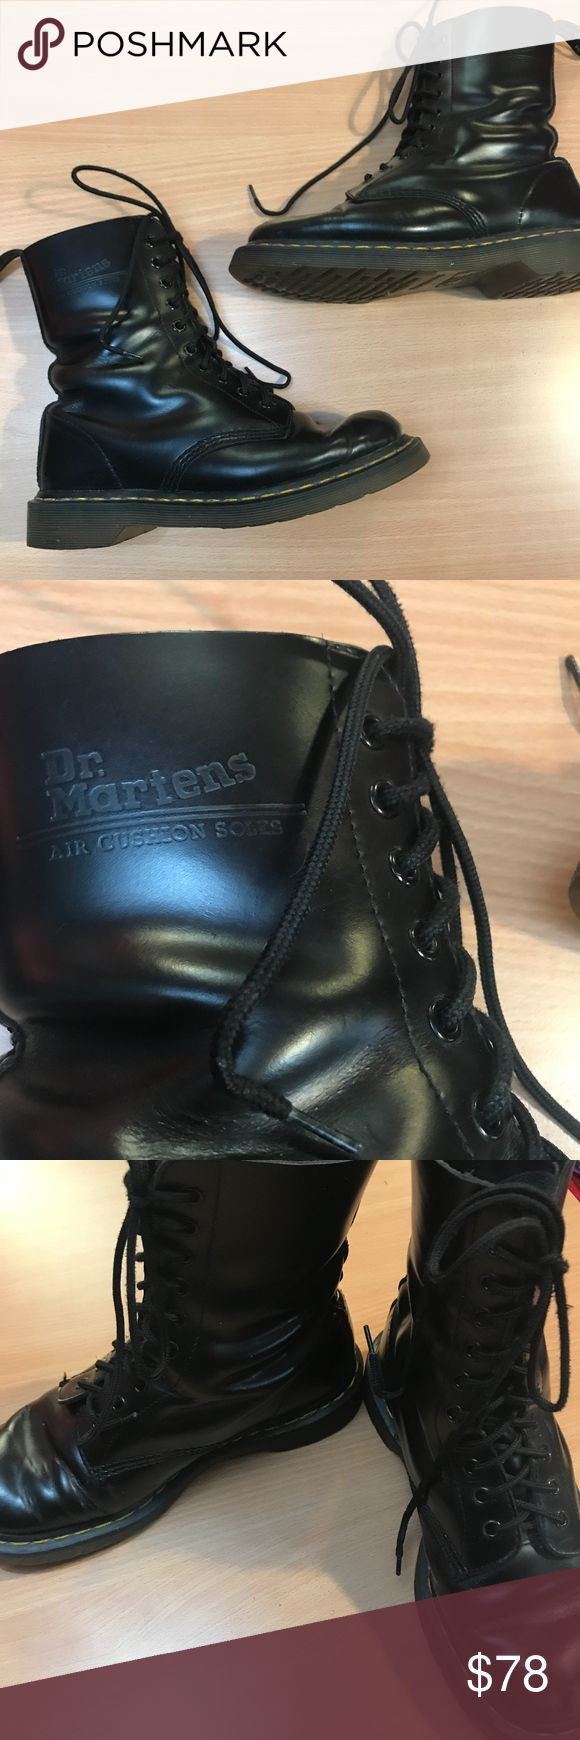 VINTAGE Doc Martens 1480 Original Combat Boots 10 eye black combat boots! Air Wair Doc Martens. The original, classic style. Marked UK 7, US Ladies 9, EU 41. Yellow top stitching, black laces. These are straight out of the 90's. Broken in, and in great vintage condition. Some scuffs on toes, otherwise perfect leather condition. The soles are beautiful. I think they feel more like a size 10 than a 9, so if you are familiar with Doc Marten sizing, this isn't new to you. Dr. Martens Shoes…